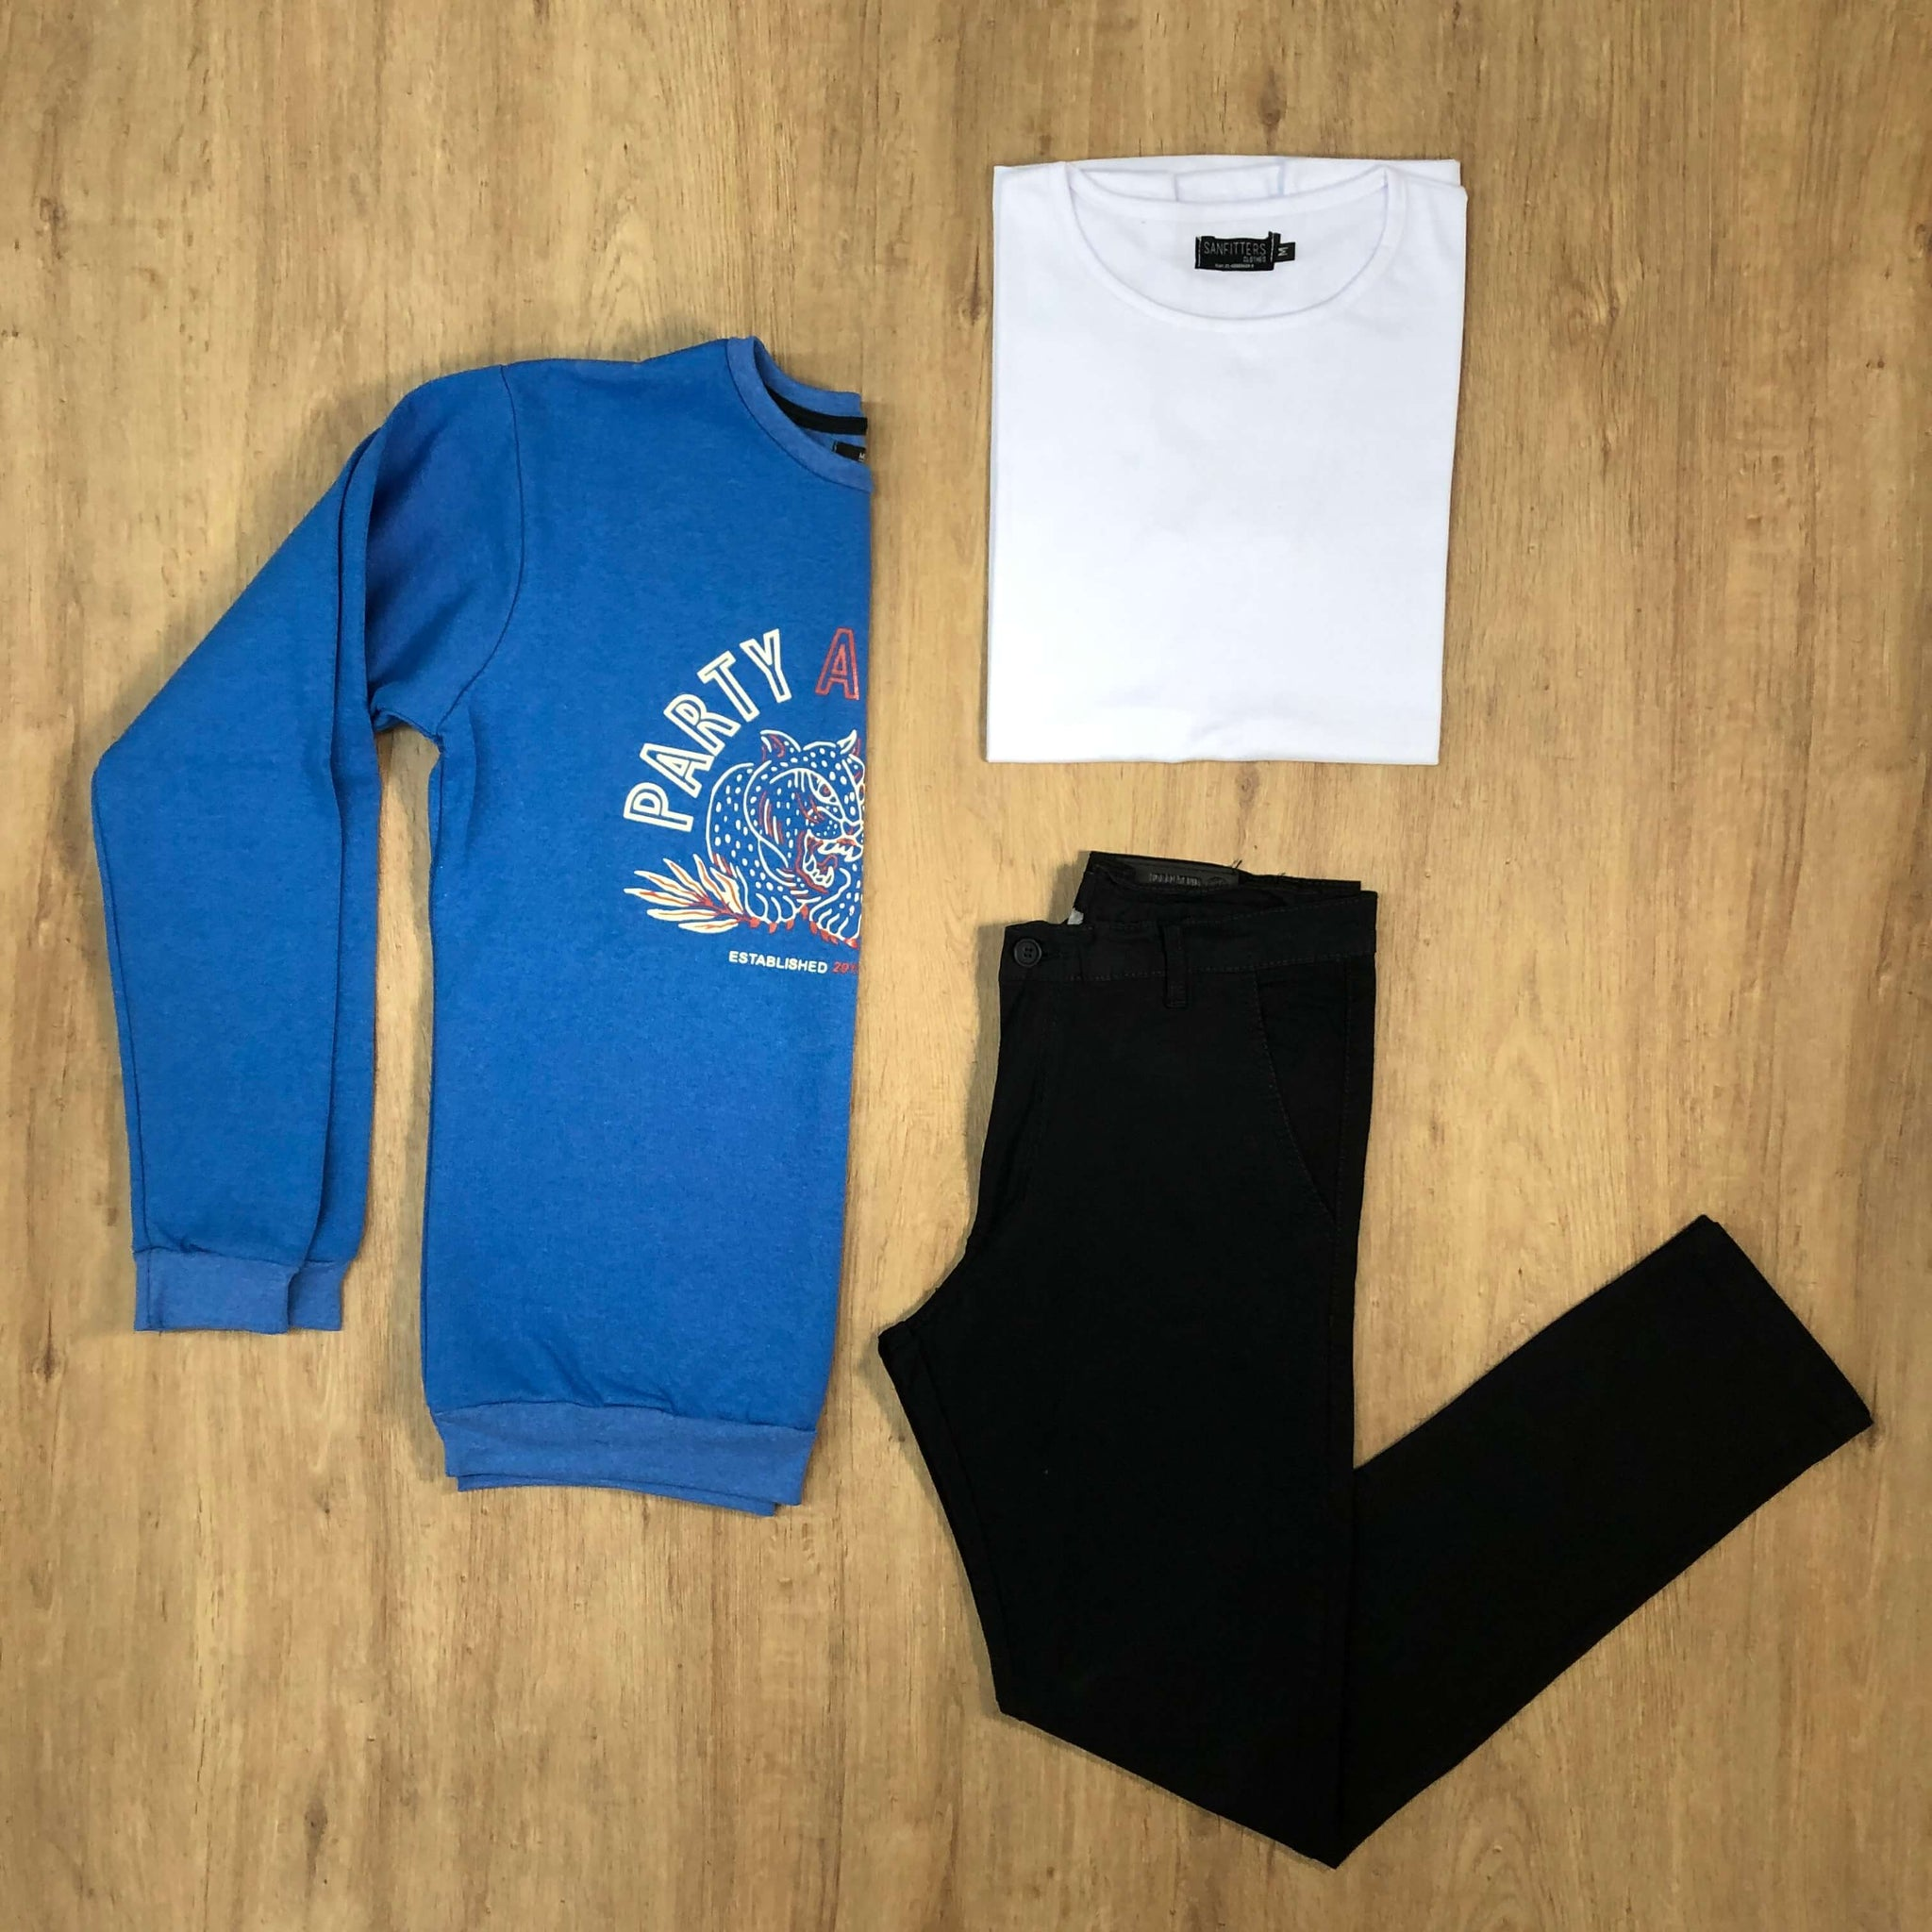 Outfit 565 - Jean Chino Negro - Buzo Sky Est - Remera Basic